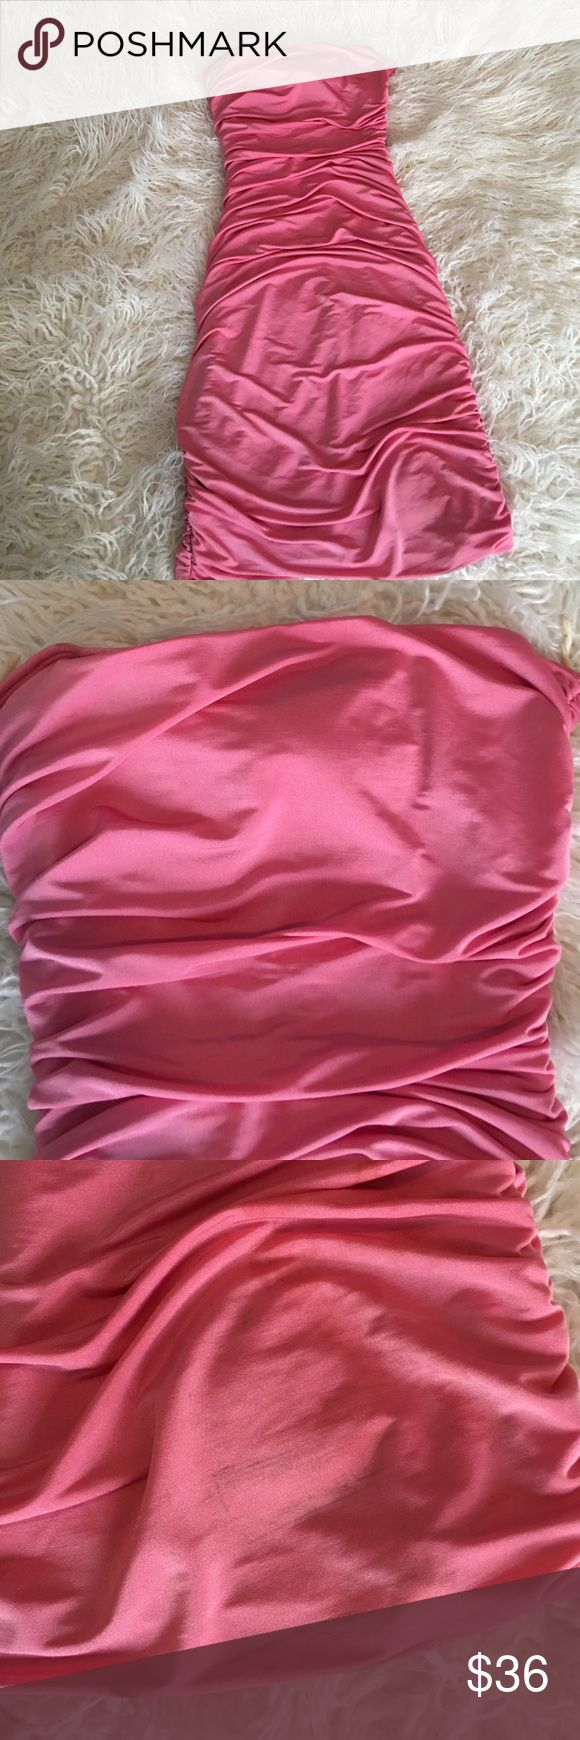 Shimmery pink bodycon dress 💕 ✨✨✨Beautiful pink party/going out dress. Size S. Good condition. The shape of this dress will accentuate your figure! Cinched down the back & on the sides. A few small marks (can be seen in picture) that will come out after a dry clean/wash! It is unstitched in a small area below the padding on inside) , it can be easily fixed. (as seen in pic) ✨✨✨ Charlotte Russe Dresses Mini